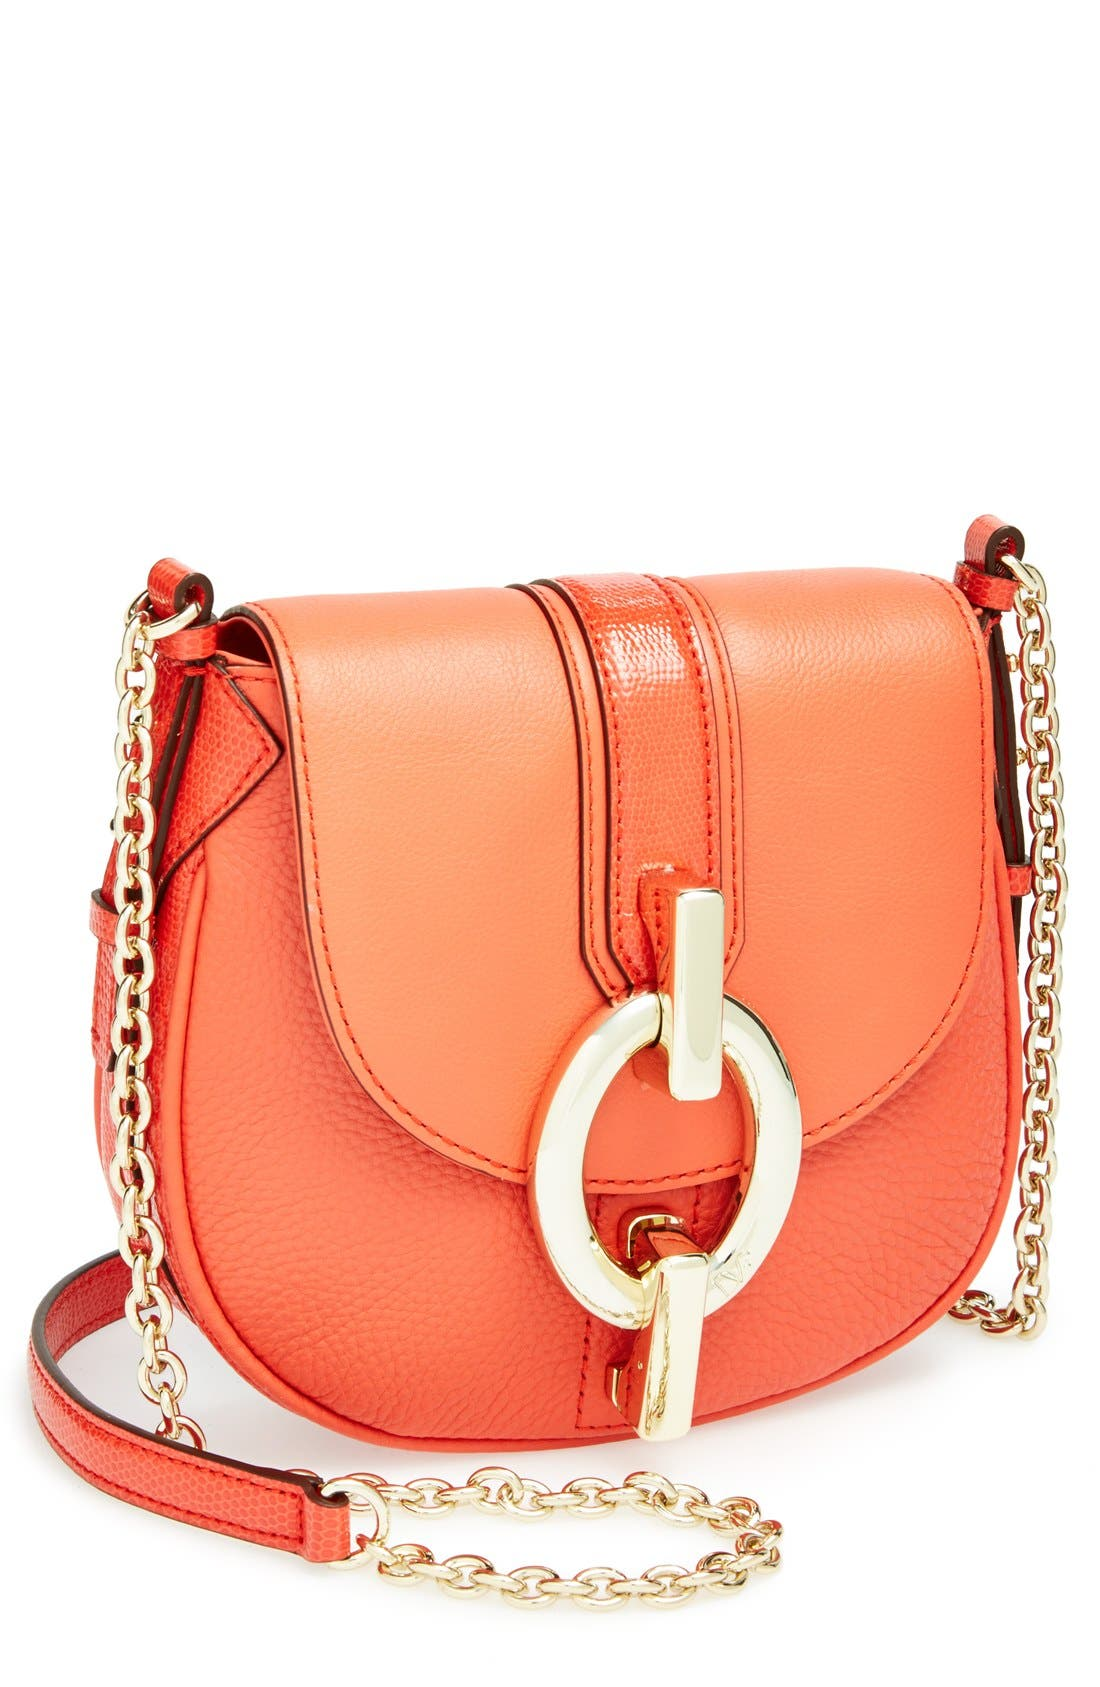 Main Image - Diane von Furstenberg 'Sutra - Mini' Leather Crossbody Bag